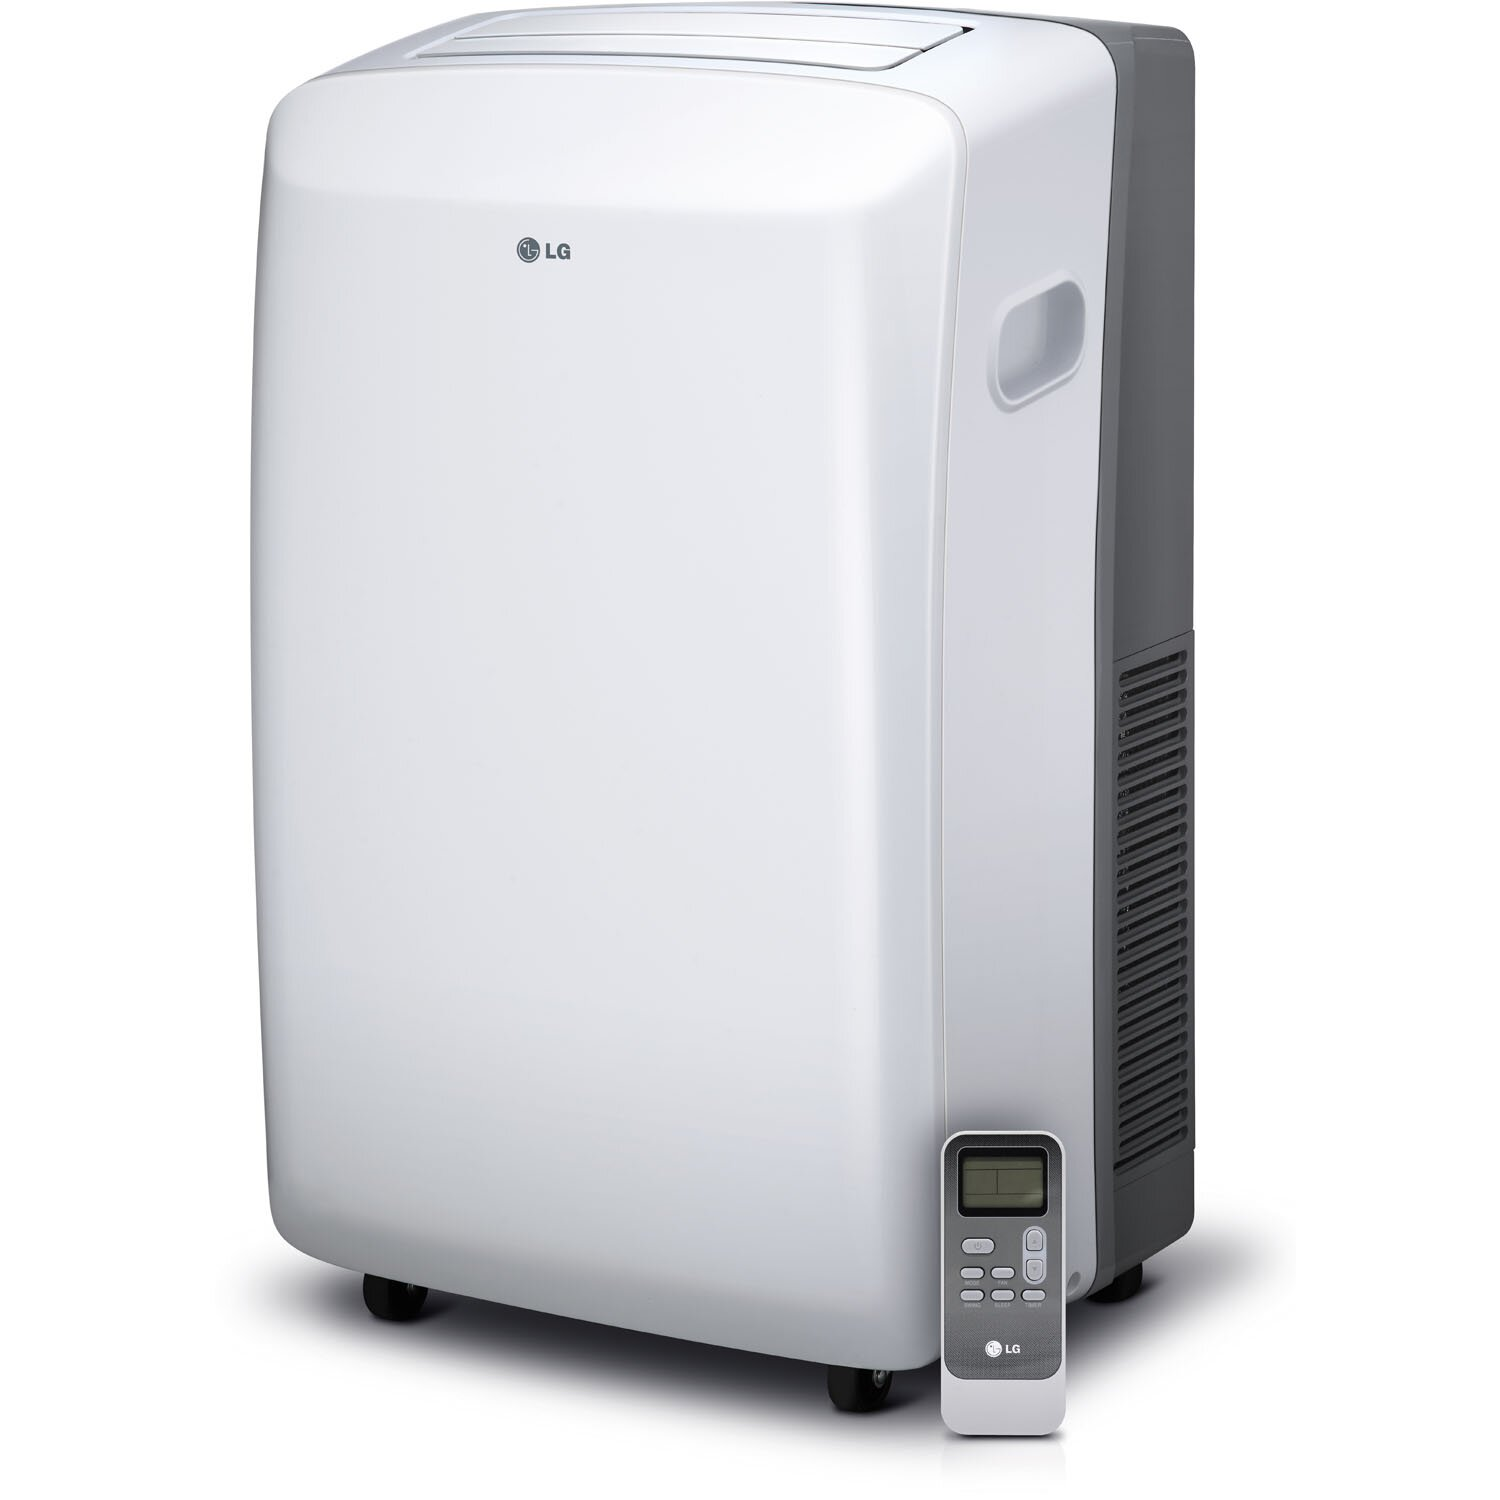 LG 10 000 BTU Portable Air Conditioner with Remote Control & Reviews  #5D5D6E